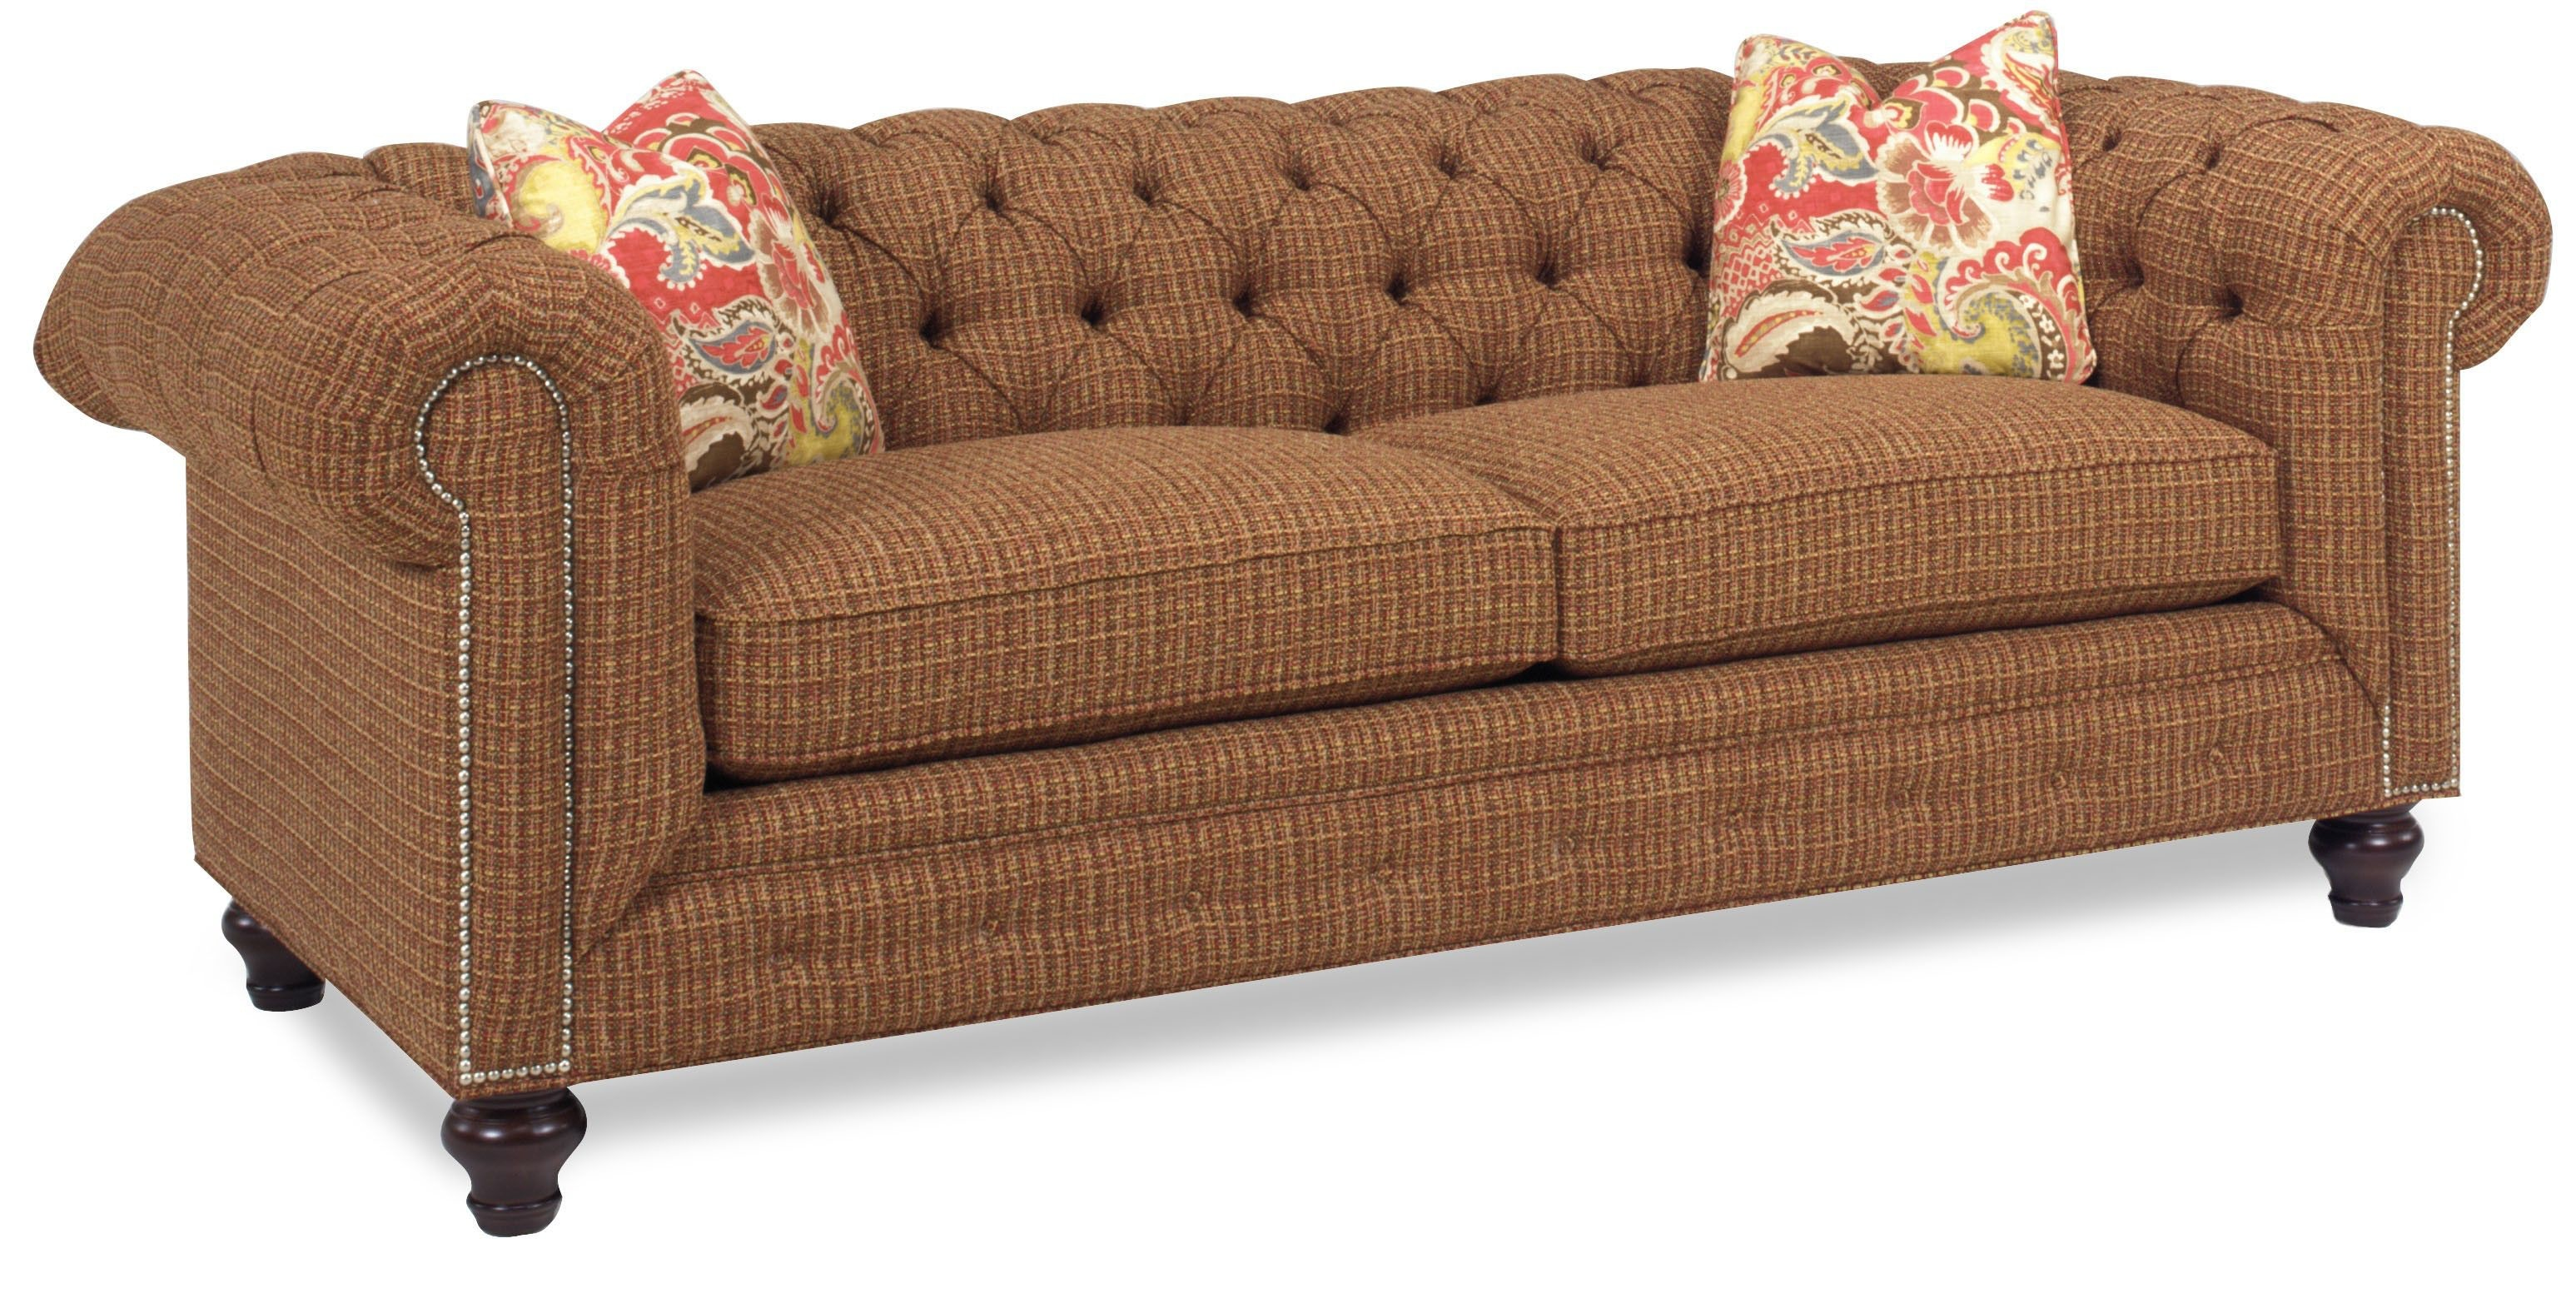 Temple Chesterfield Sofa 7500 96